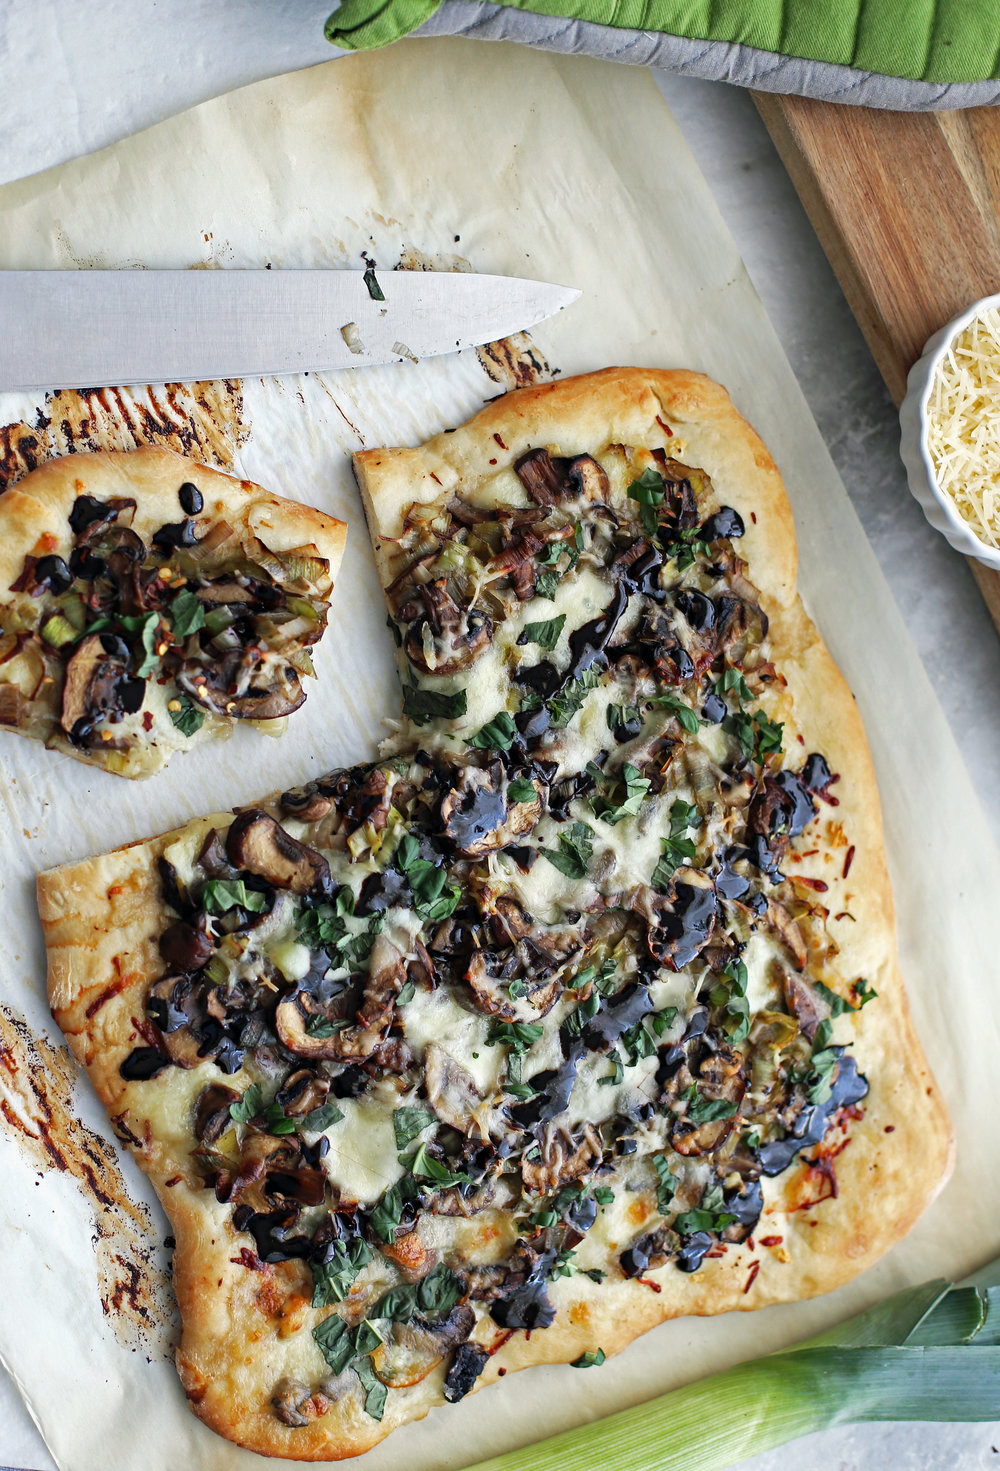 Rustic rectangle leek mushroom mozzerella pizza on parchment paper.